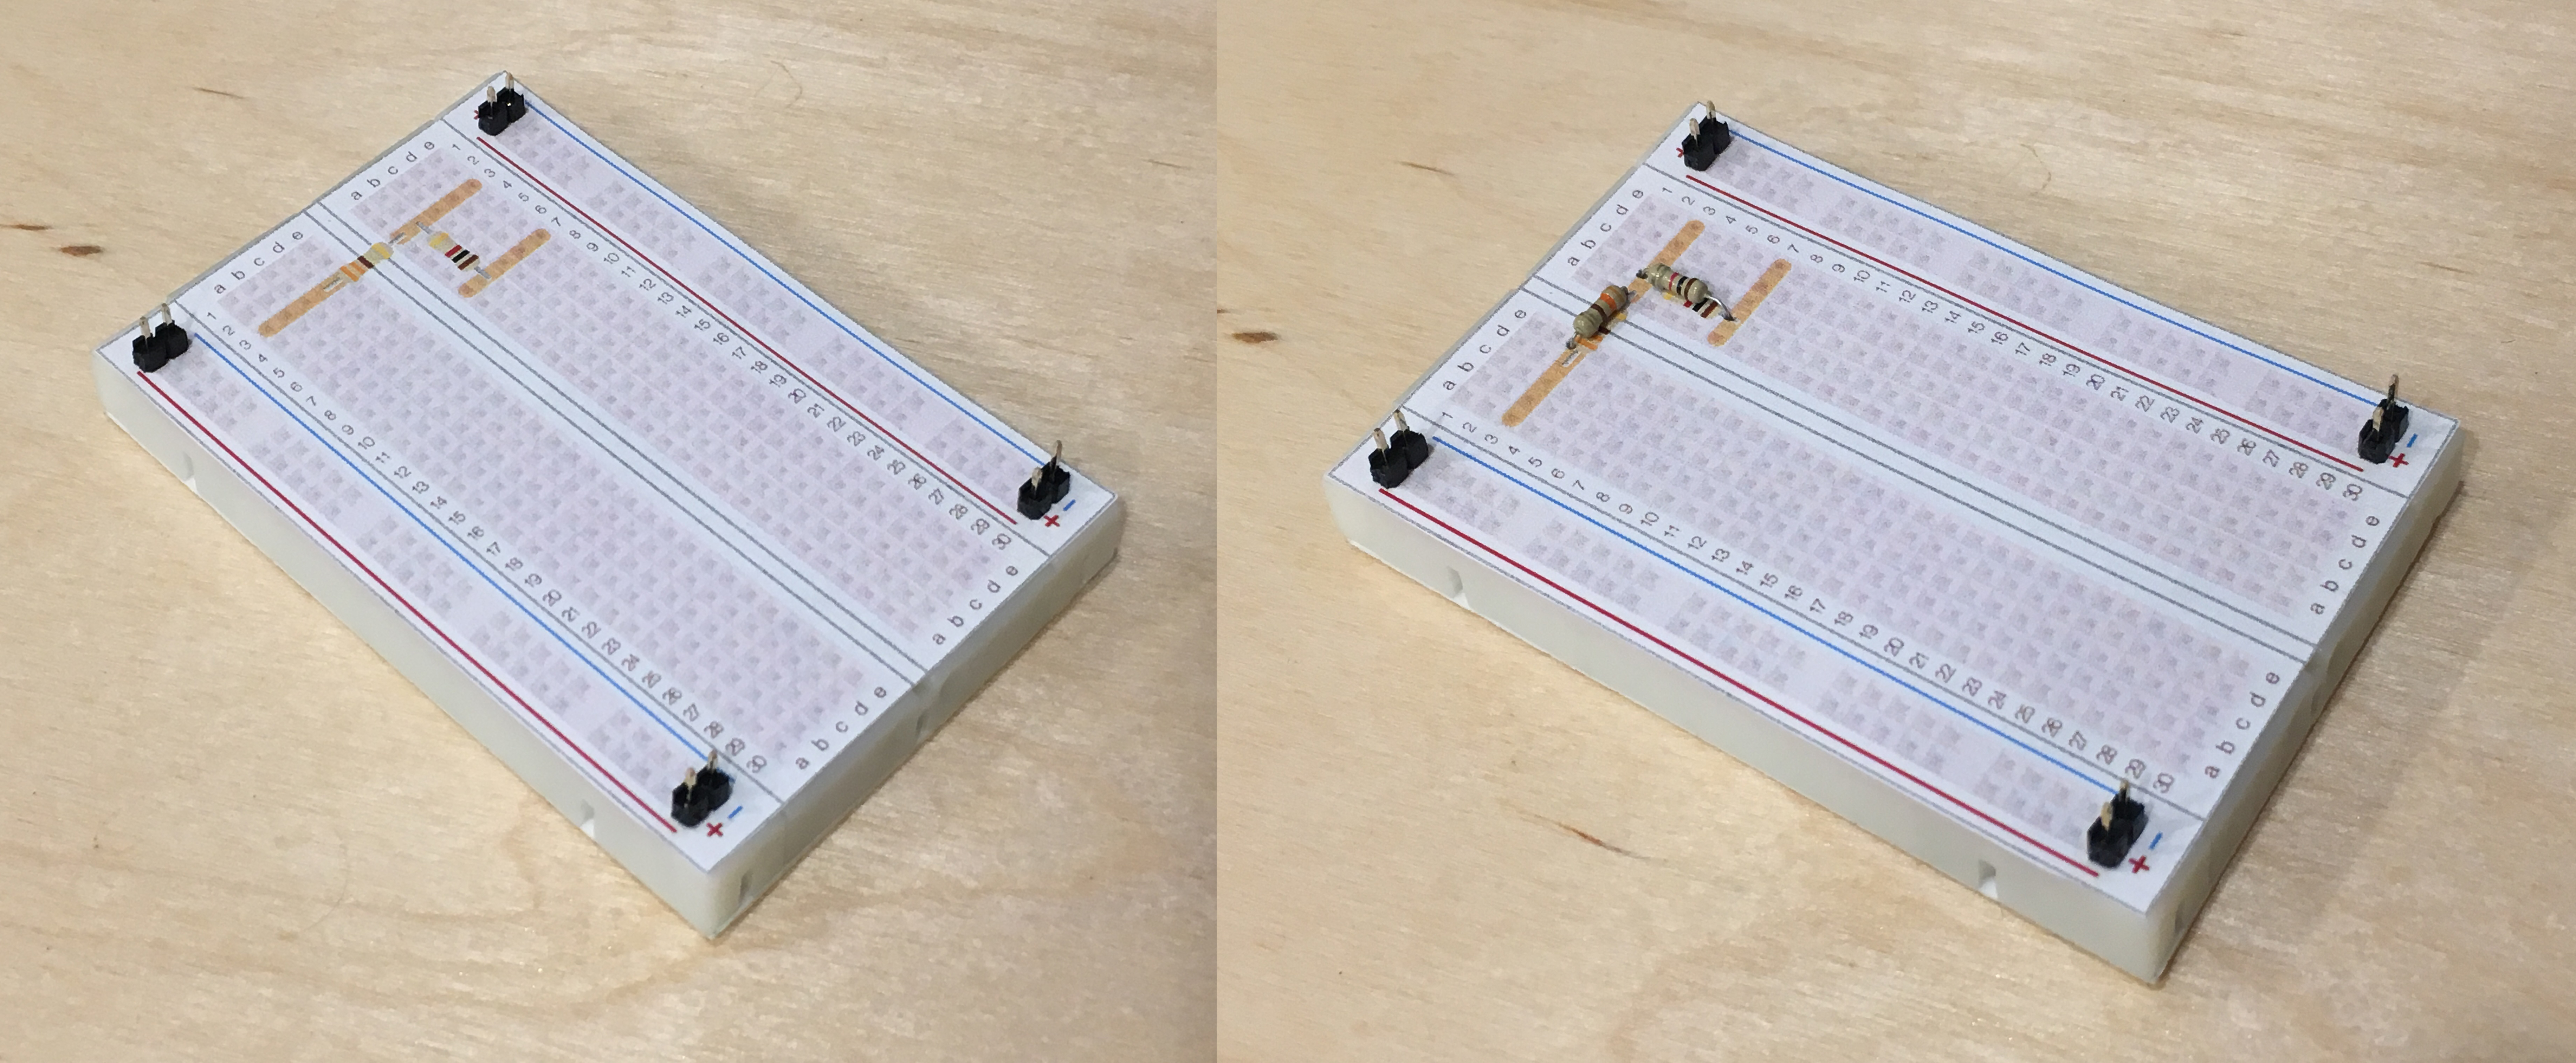 Wilderness Labs Developer Portal Putting Two Resistors In Series As Shown The Circuit Here Will Overlays Can Be Pinned Down Photos Above By Using Some Breakaway Headers Which Easily Snapped To Size With Pliers